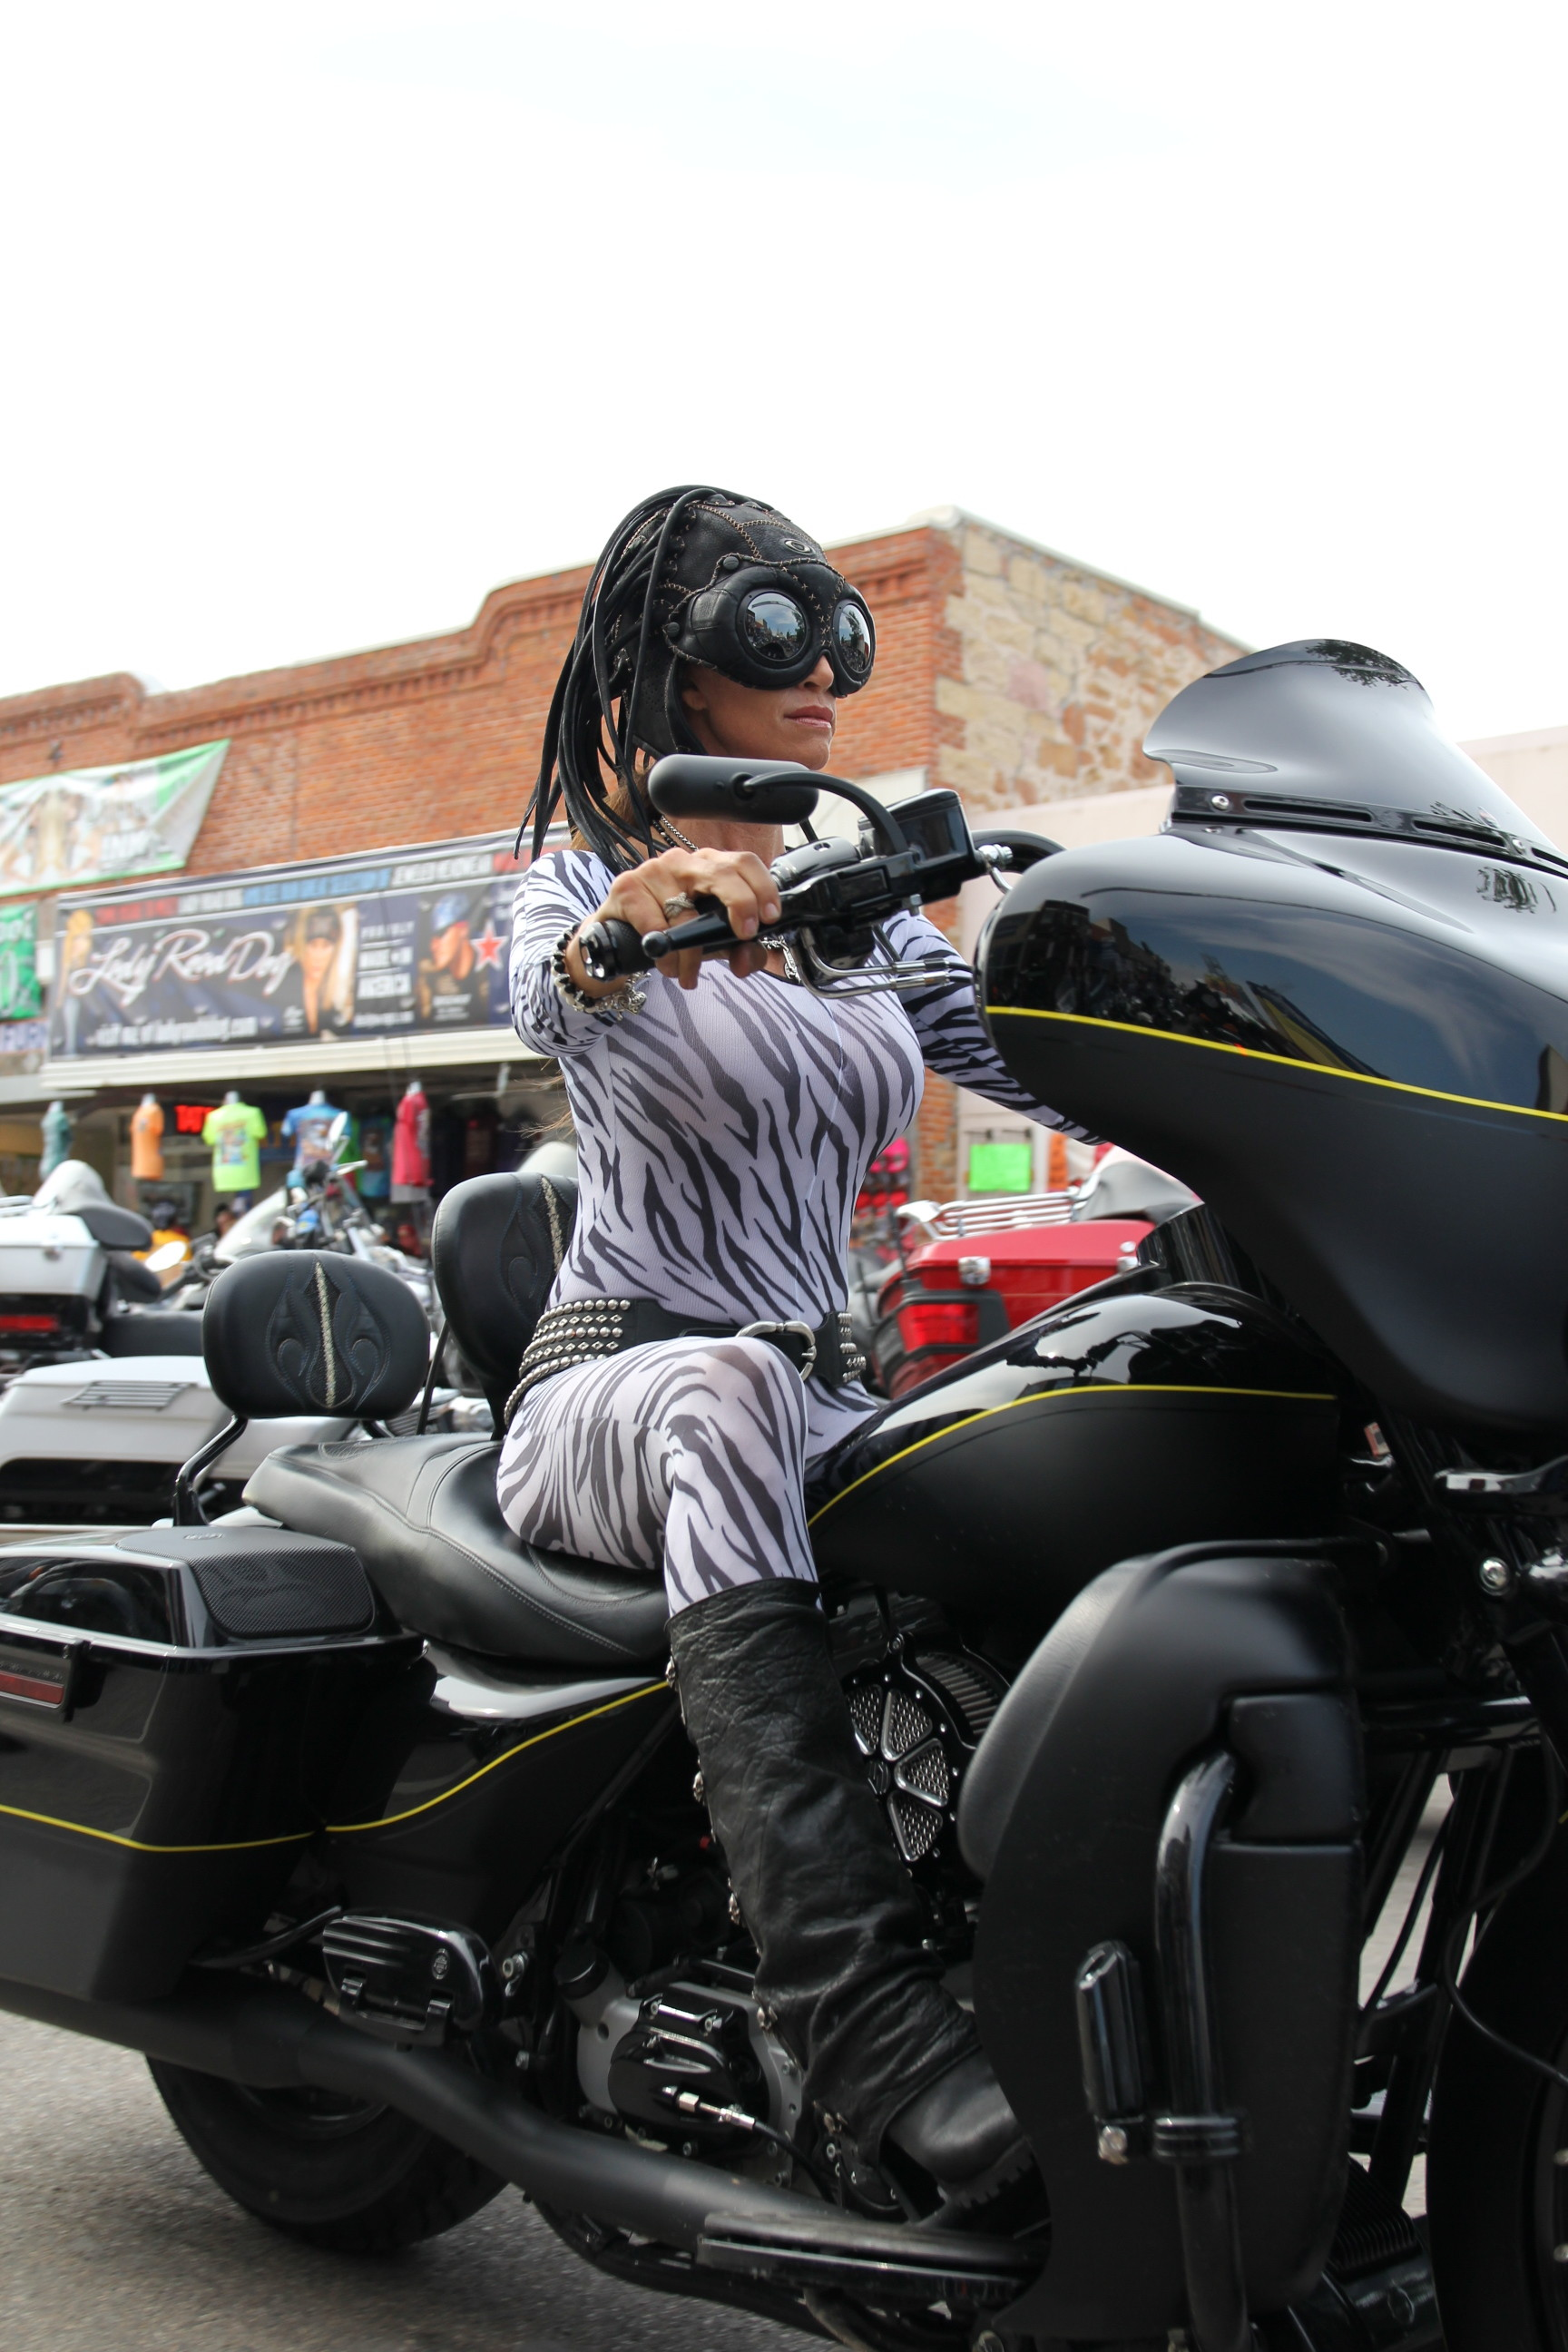 sturgis black single women Join us for a day of real women, real stories and real fun at the first annual biker belles ™ event, presented by the legendary buffalo chip.